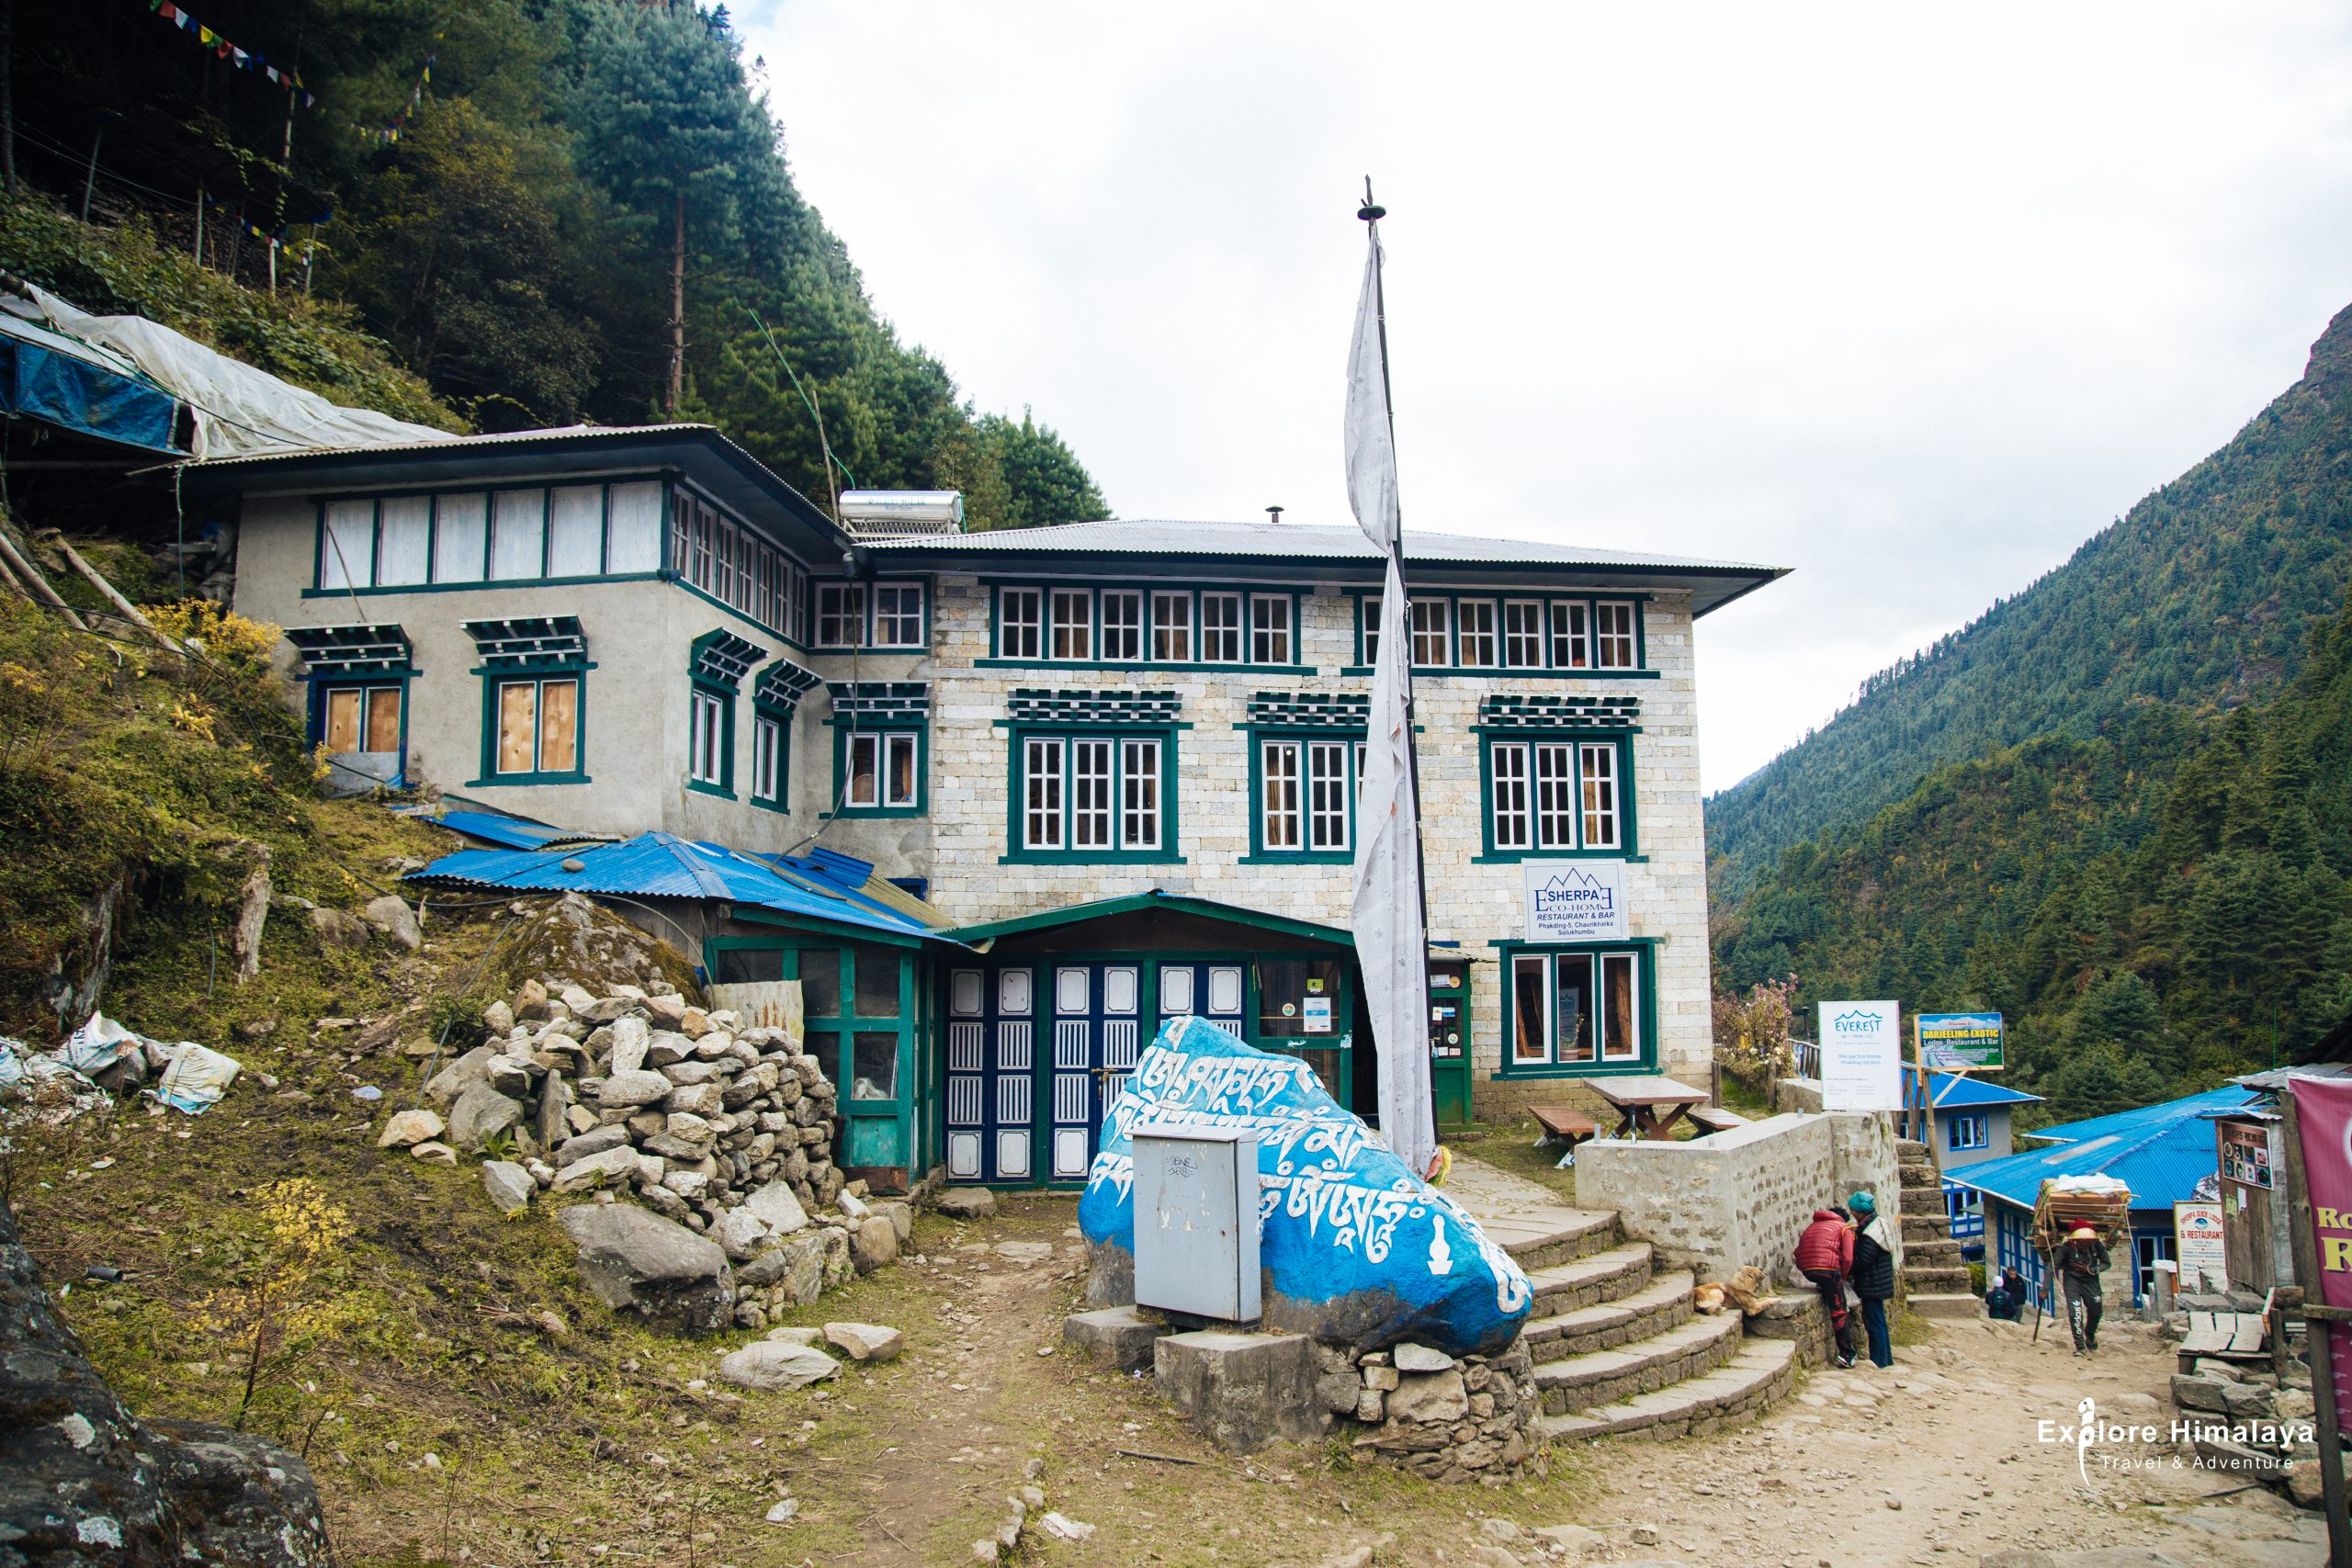 Teahouse in Everest region